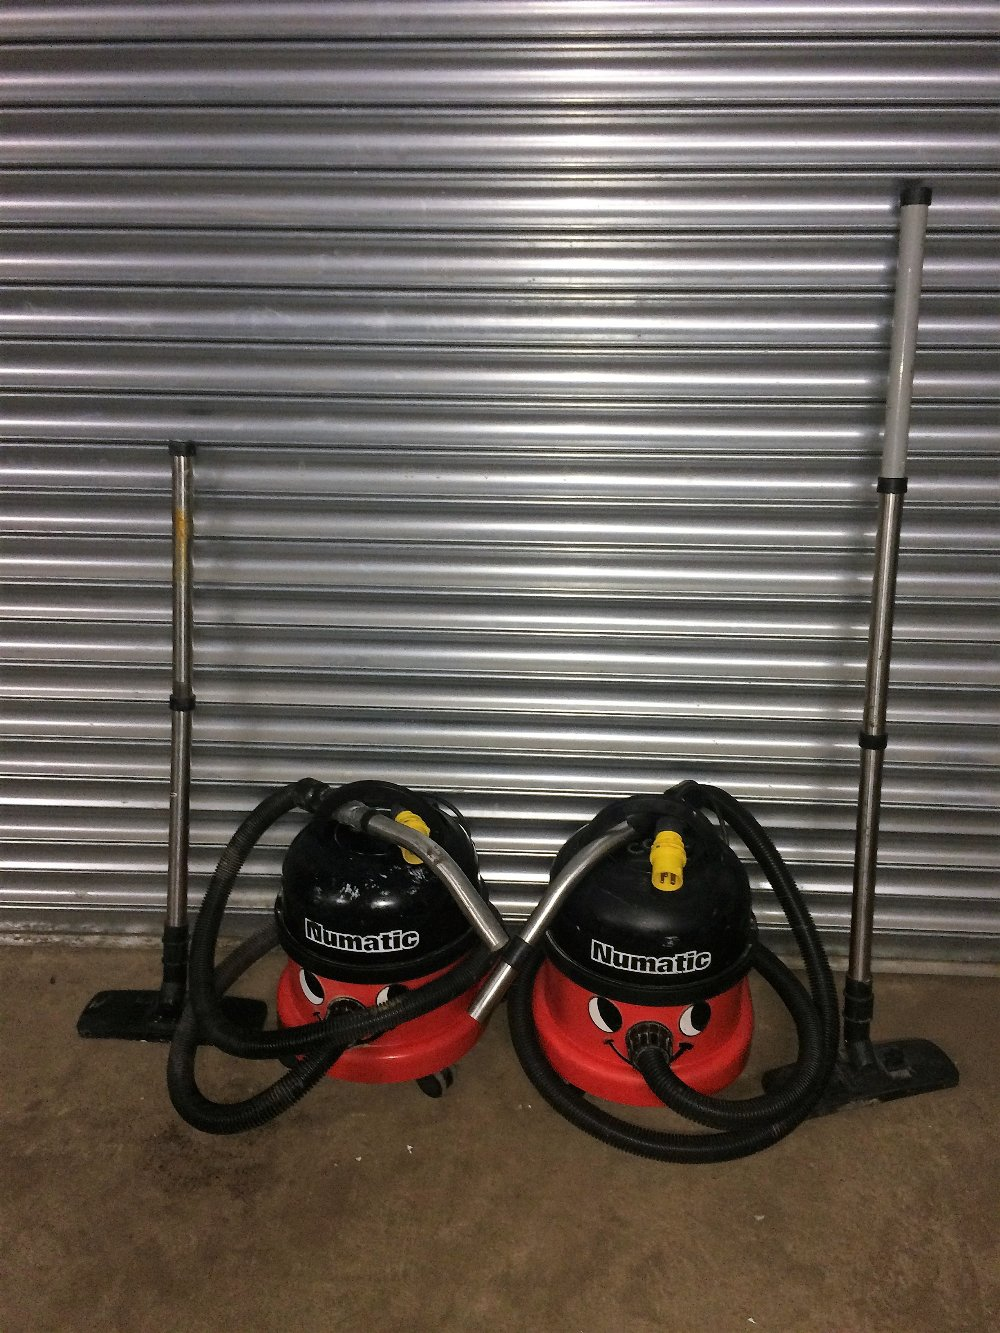 43 Henry Henry Hvr200 22 Numatic Nvr200 22 Commerical Vacuum Cleaners